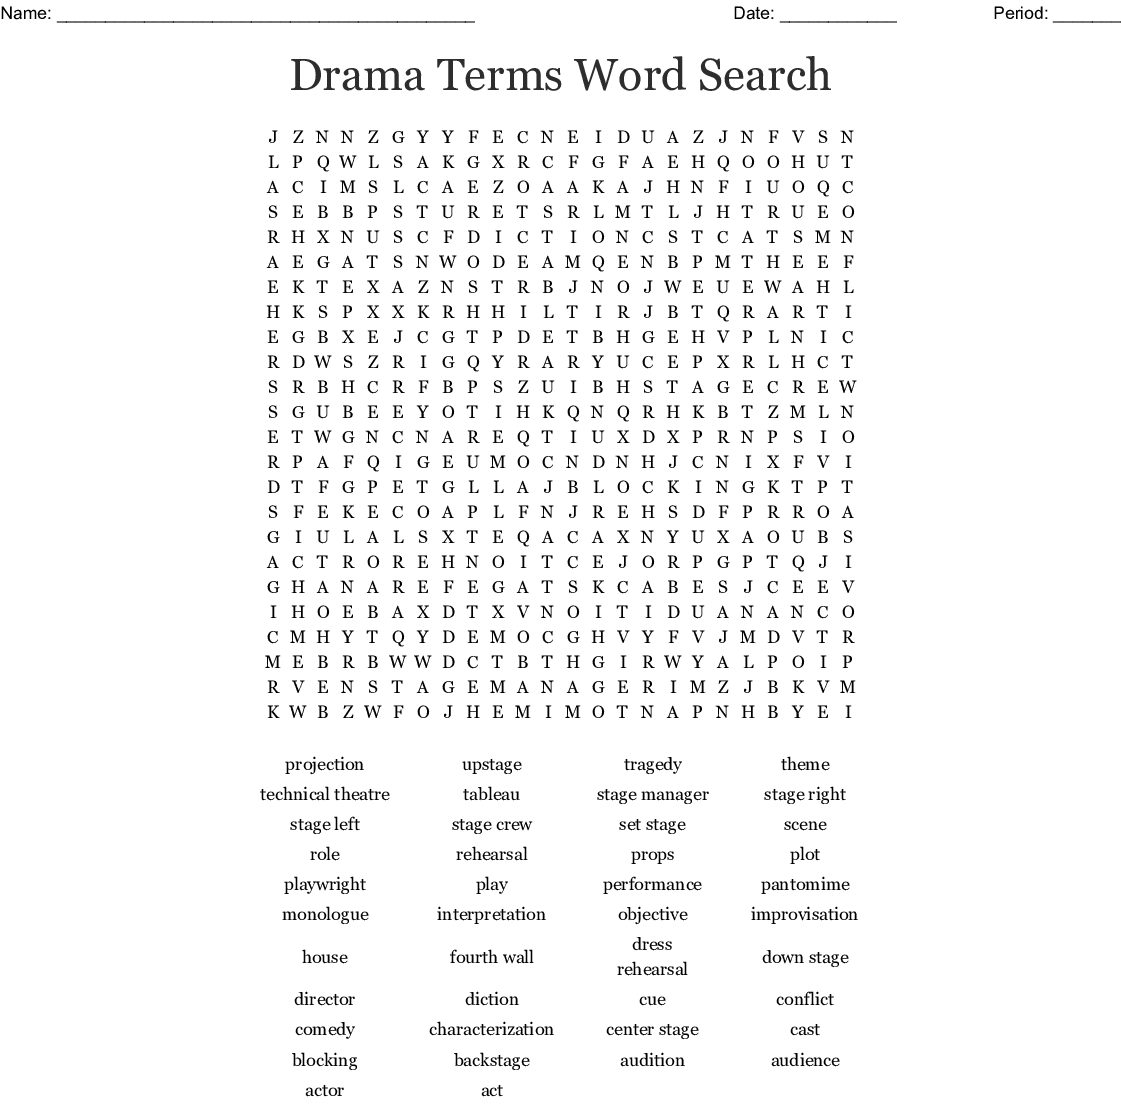 Drama Word Search Printable